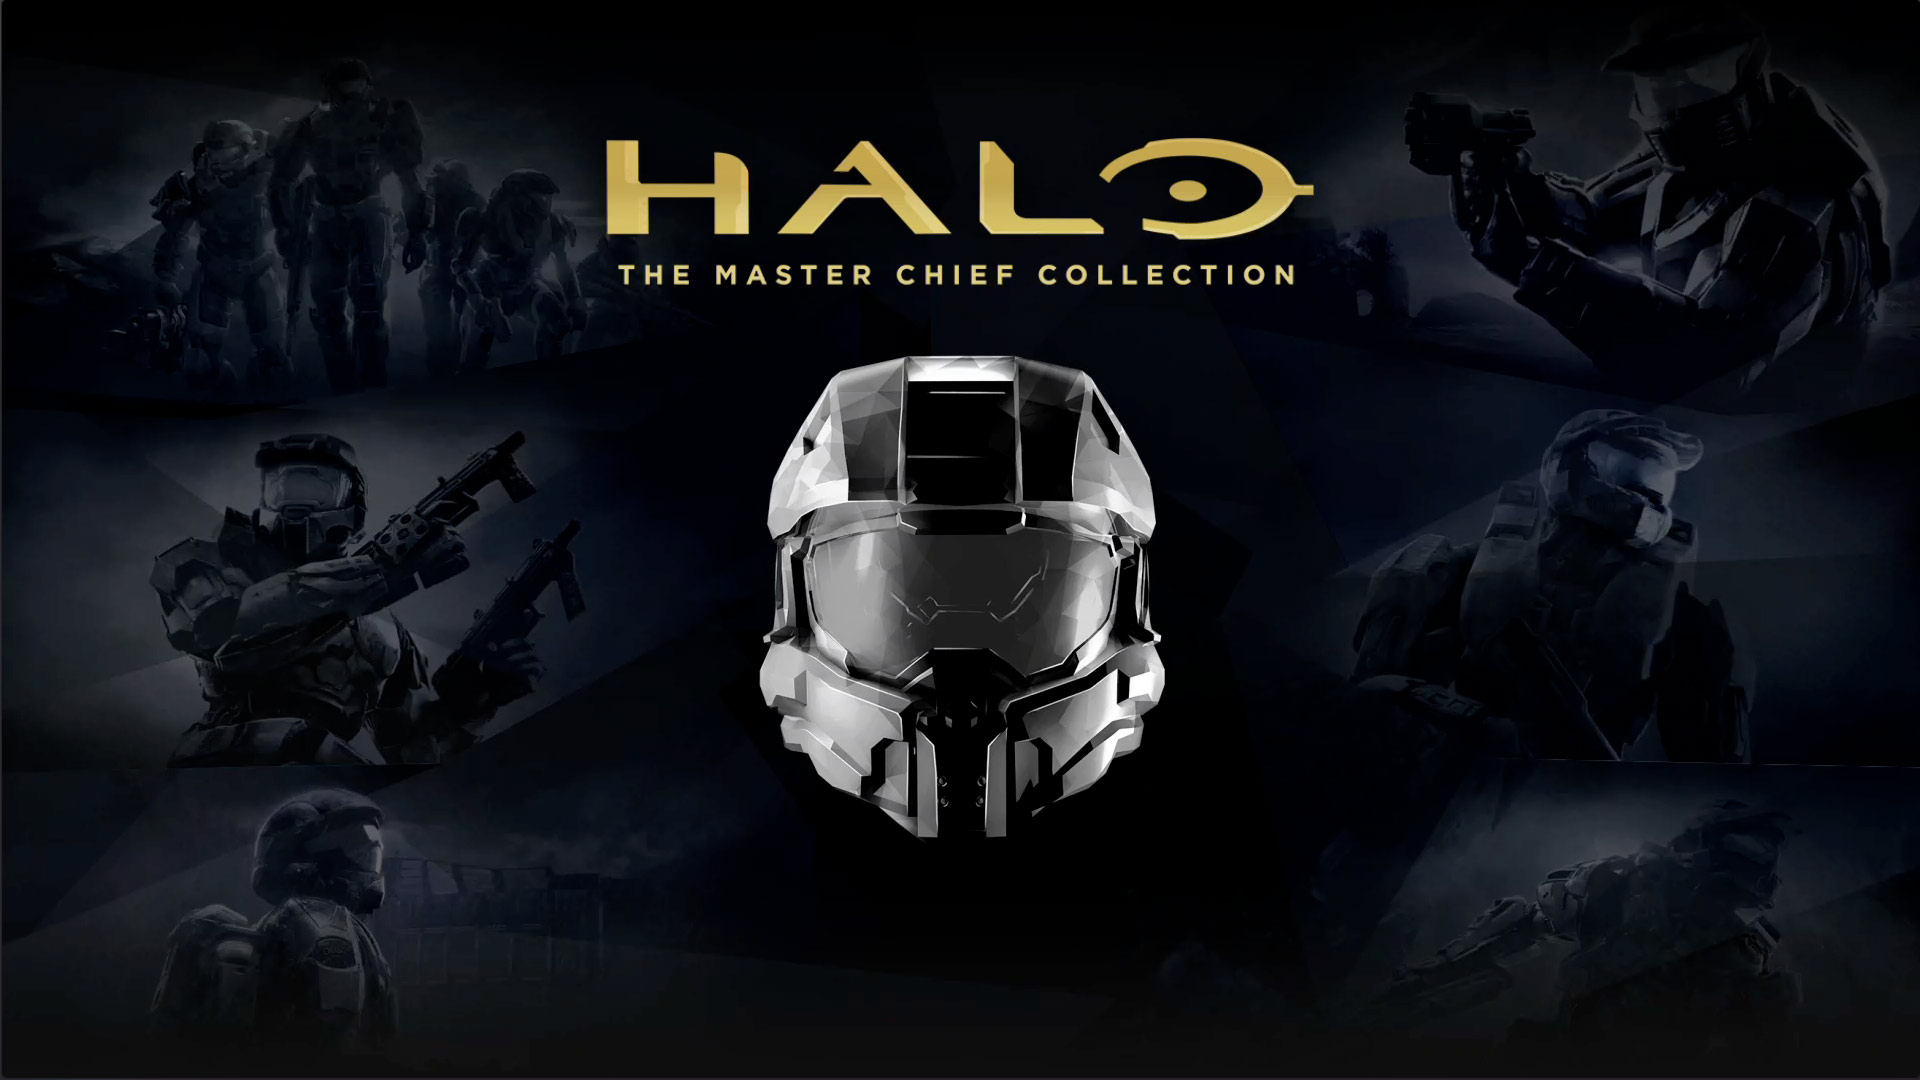 Halo The Master Chief Collection PC Version Free Download